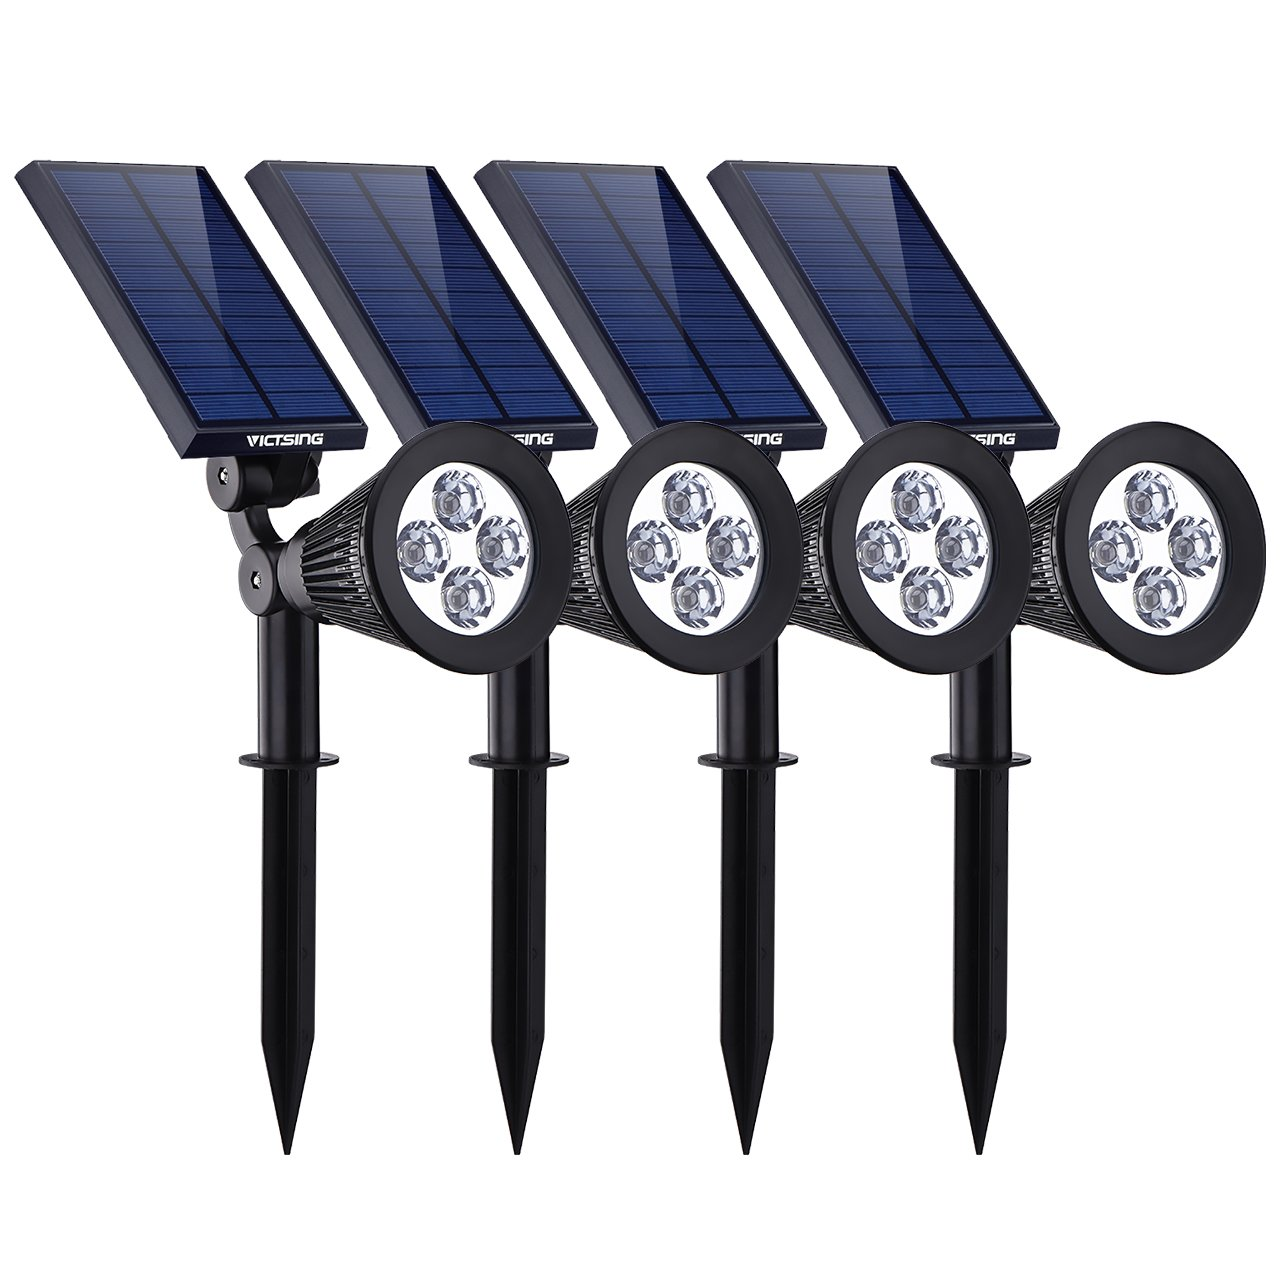 VicTsing 4 Pack Solar Spotlights,The Third Generation 2-in-1 Waterproof Adjustable 4 LED Wall/Landscape Solar Lights Automatic On/Off Sensor Driveway, Yard, Lawn, Pathway, Garden by VicTsing